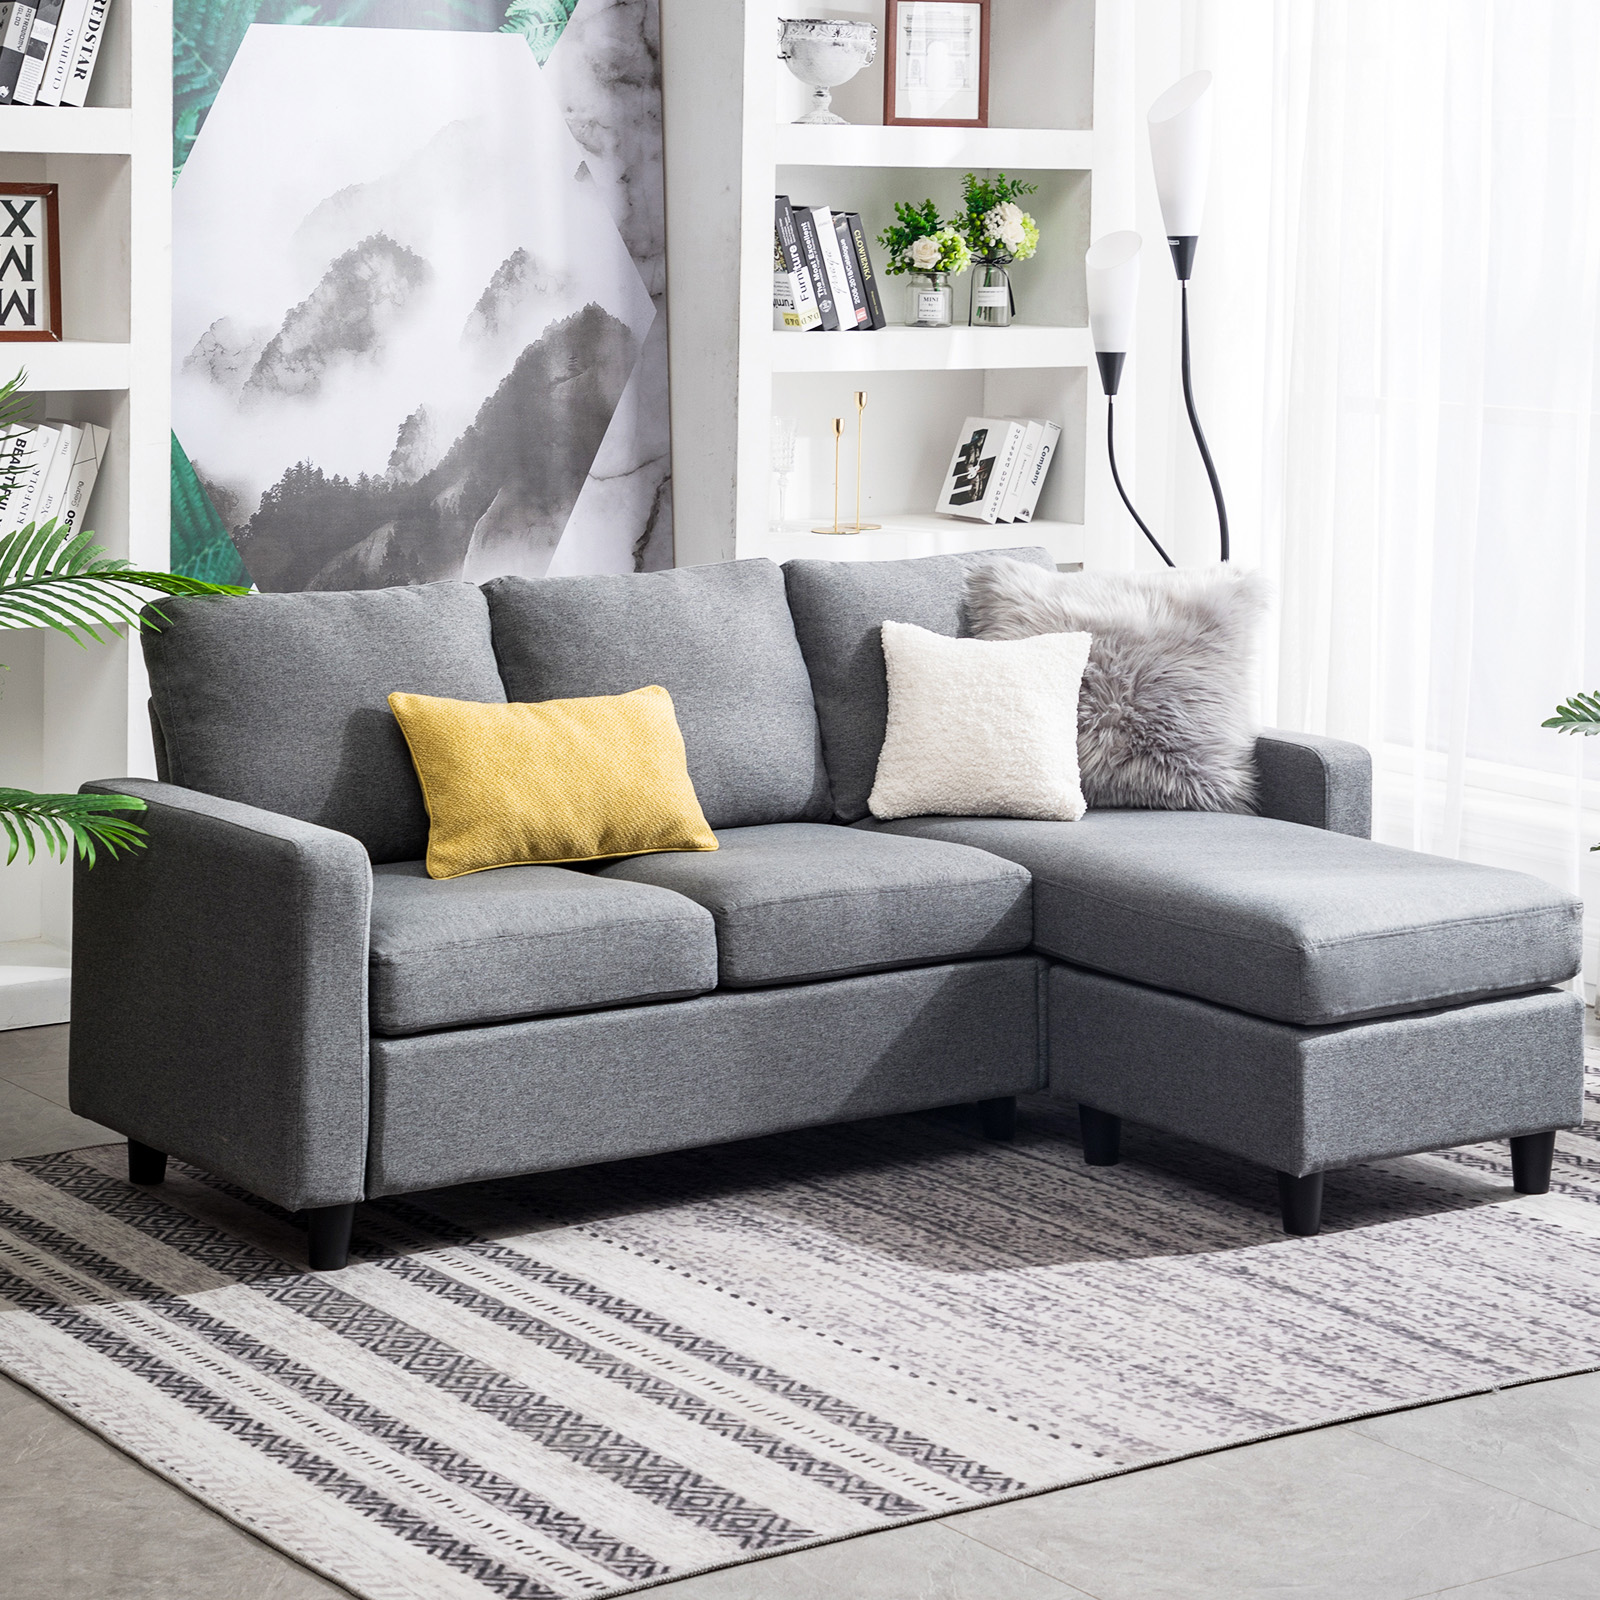 Meet johnny grey every item on this page was curated by an elle decor editor. Grey Sectional Sofa L-Shaped Couch W/Reversible Chaise for ...